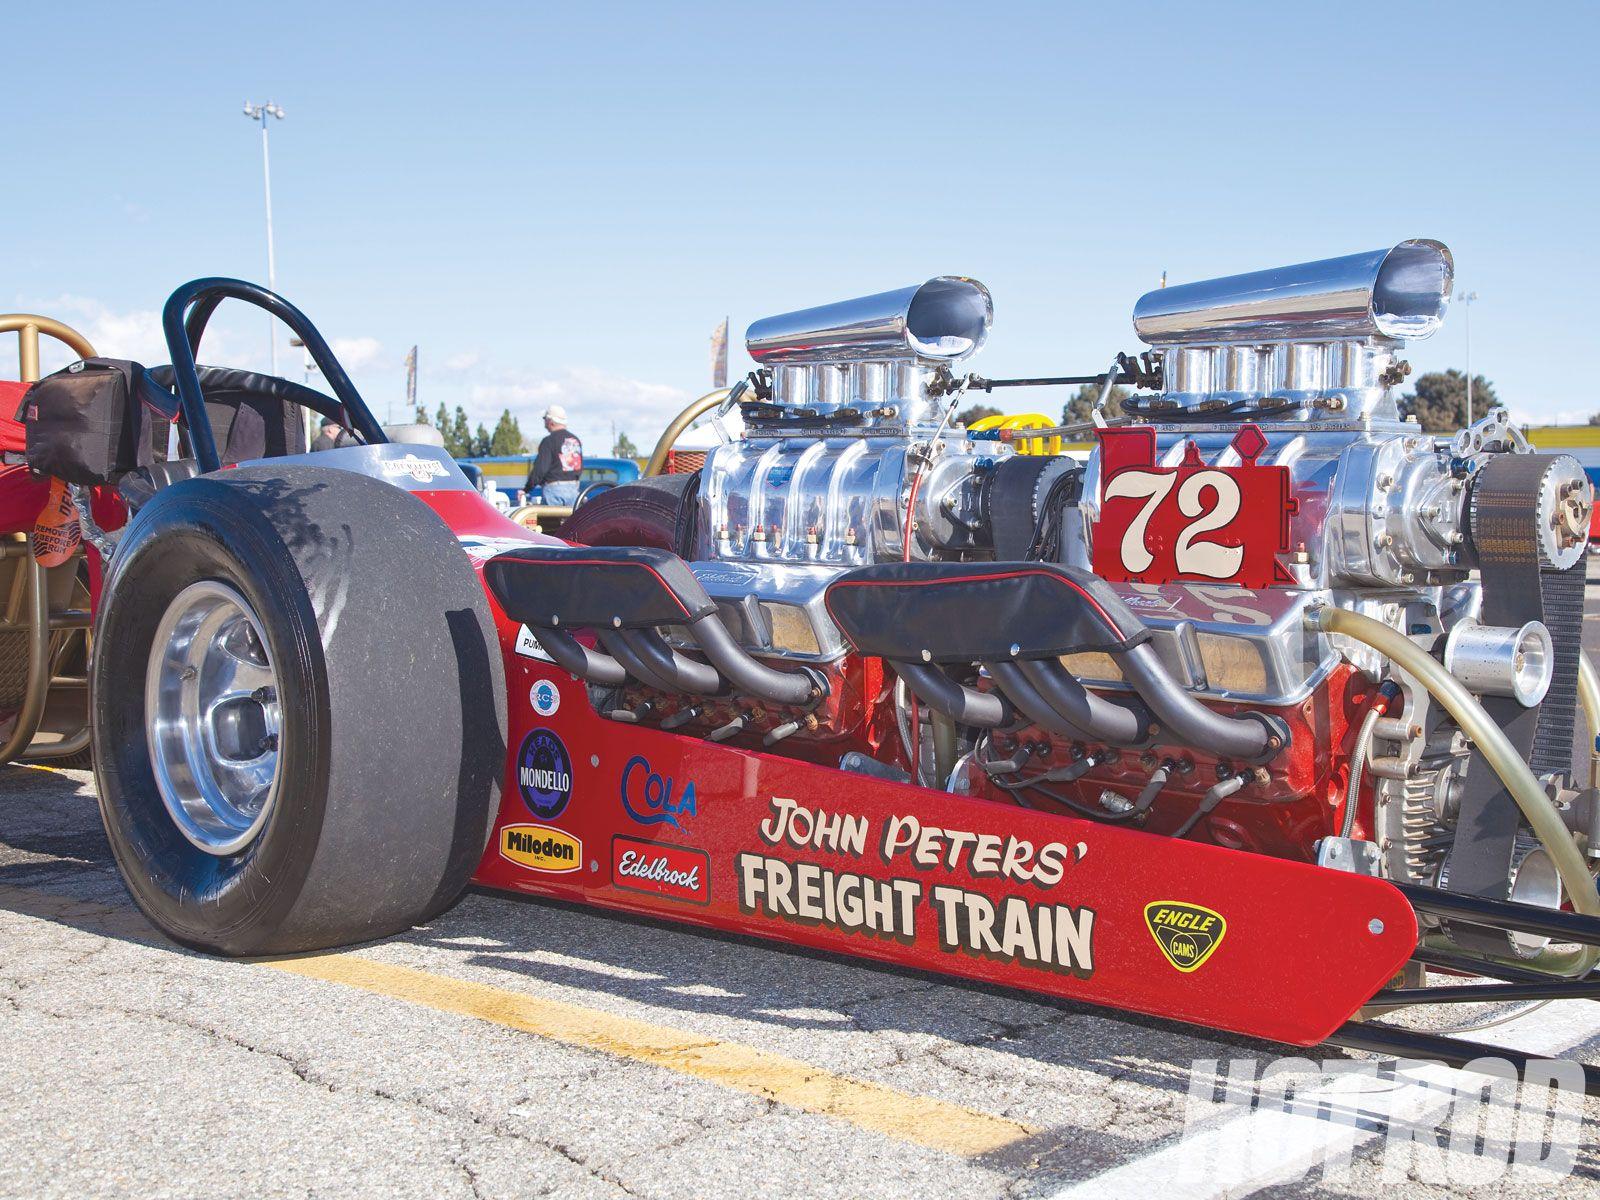 hight resolution of freight train twin engine top fuel